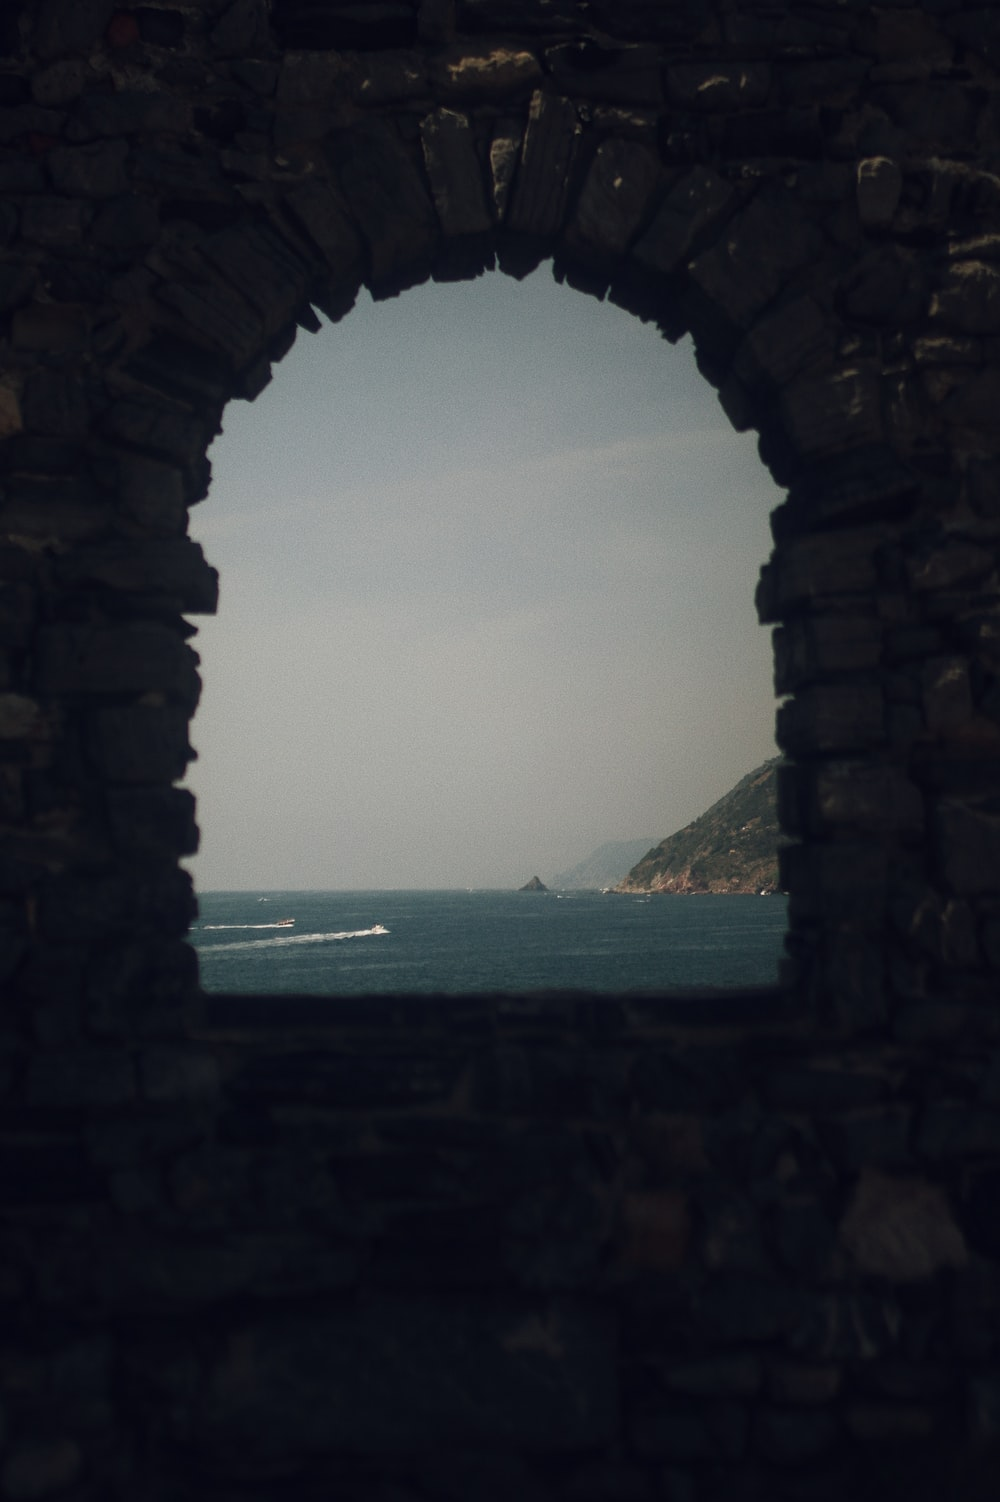 brown brick arch near body of water during daytime